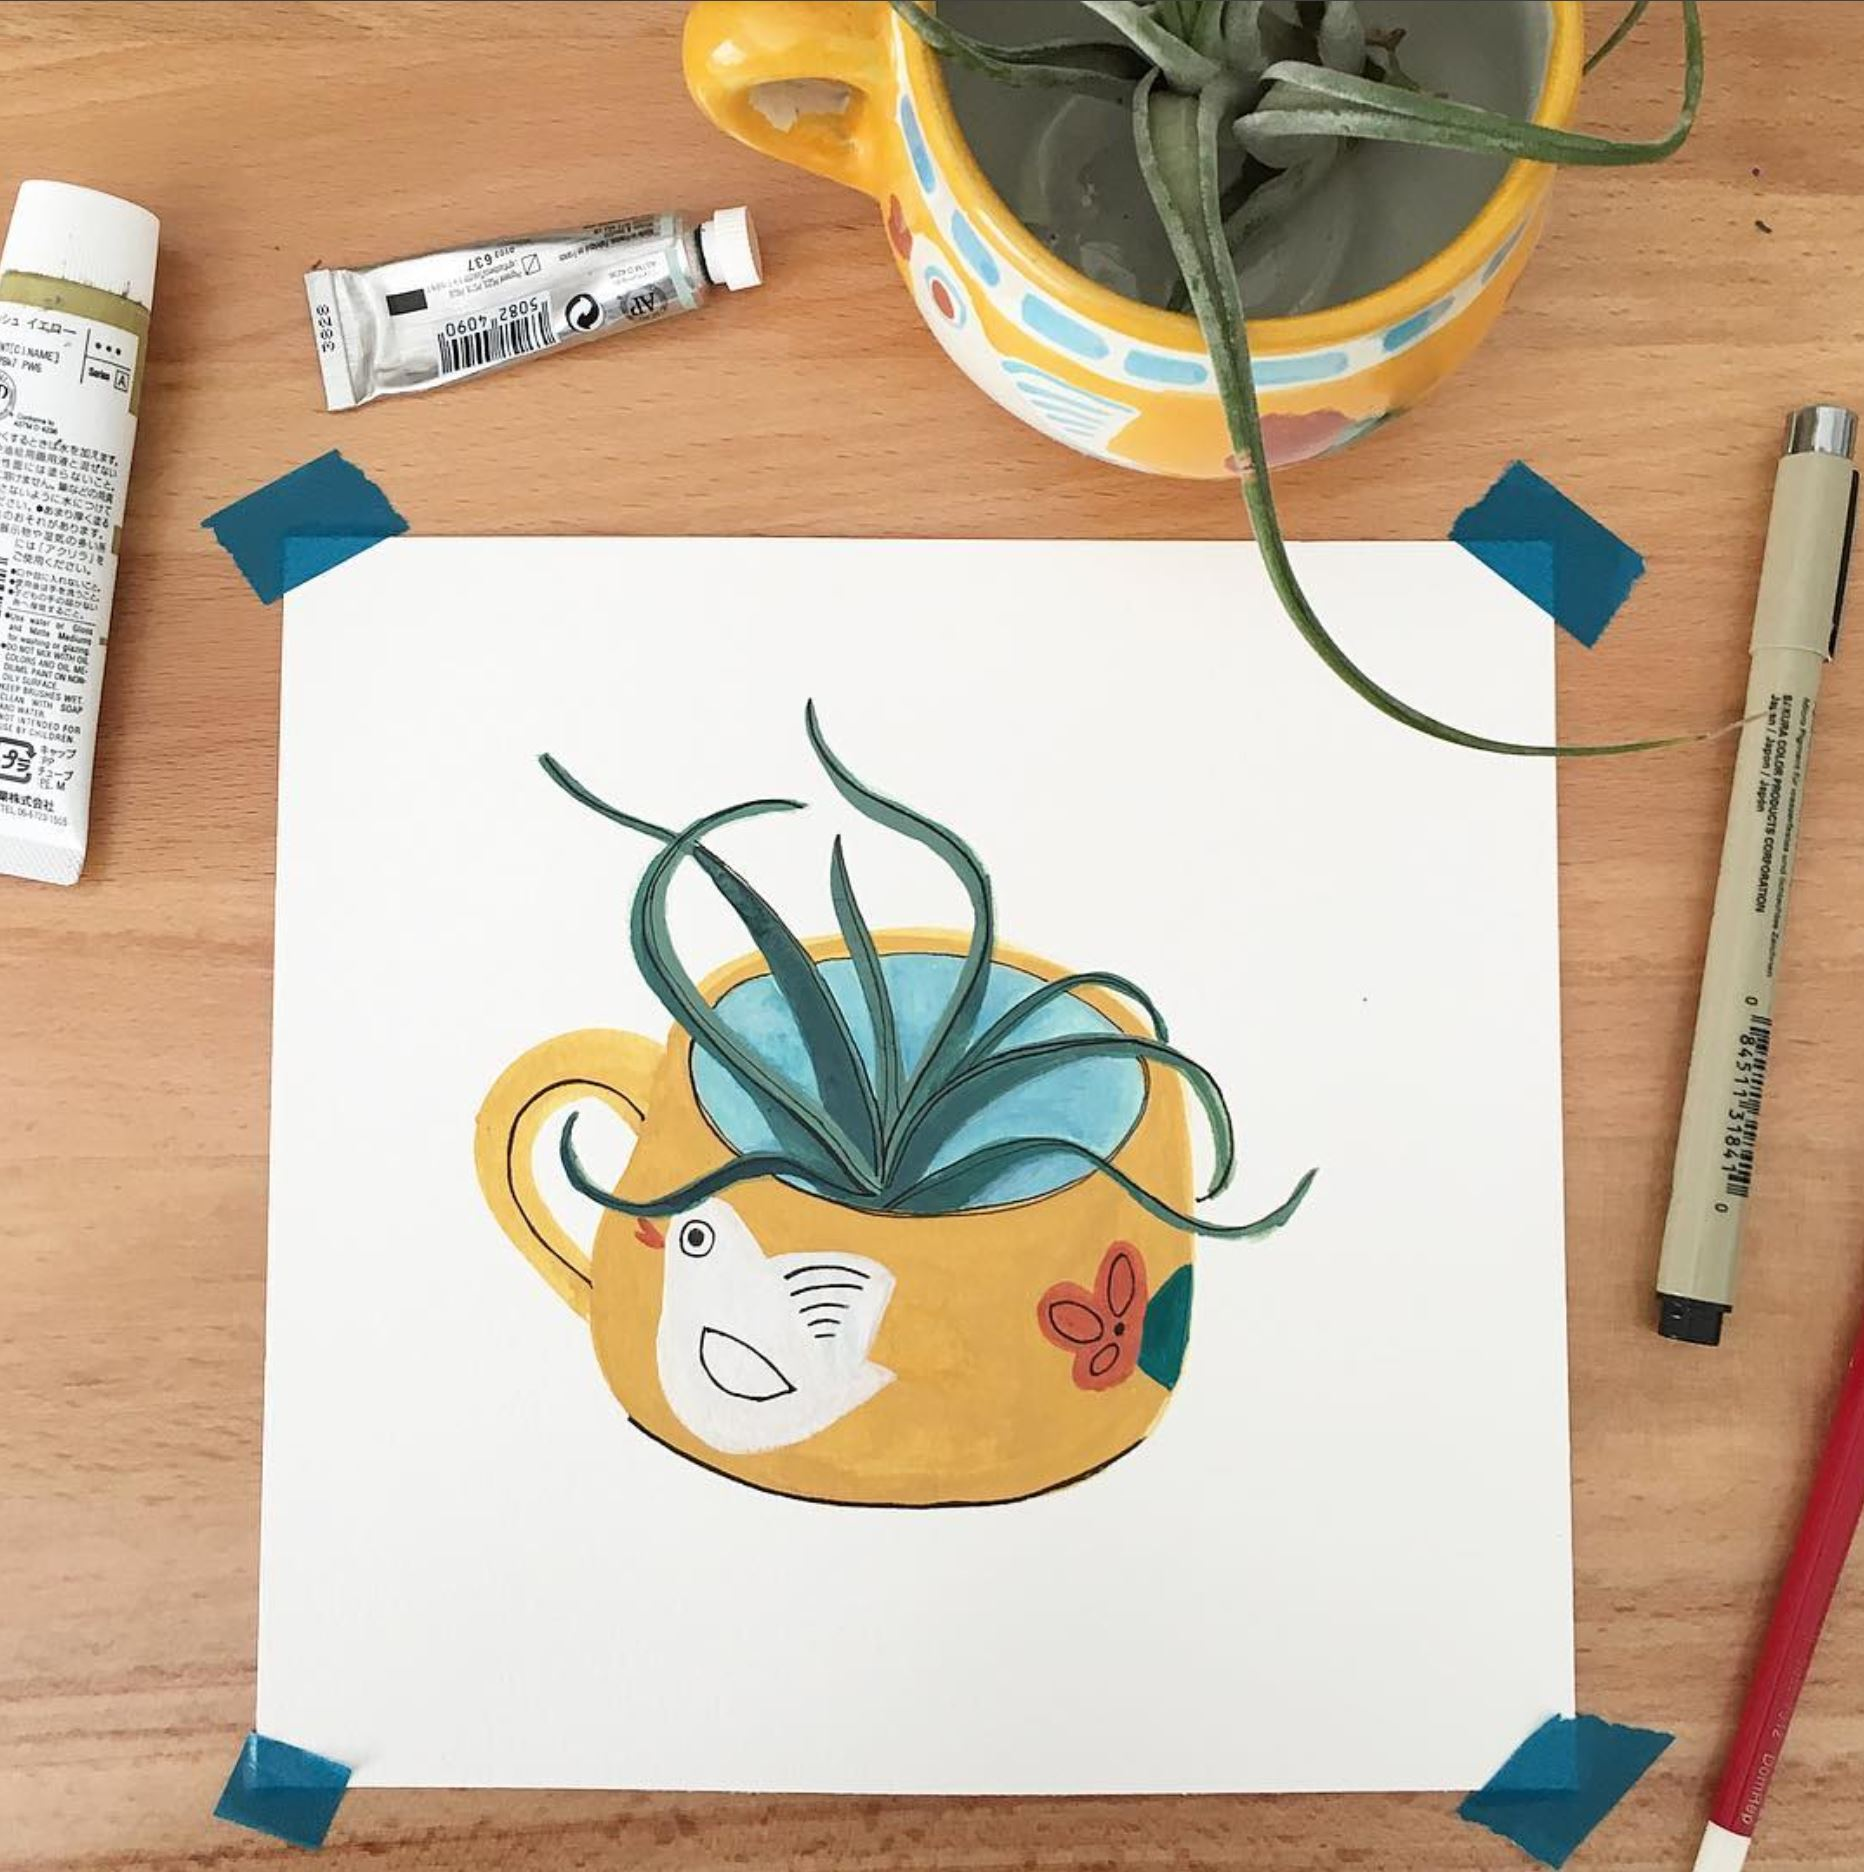 decor doodle, pottery drawing, plant illustration